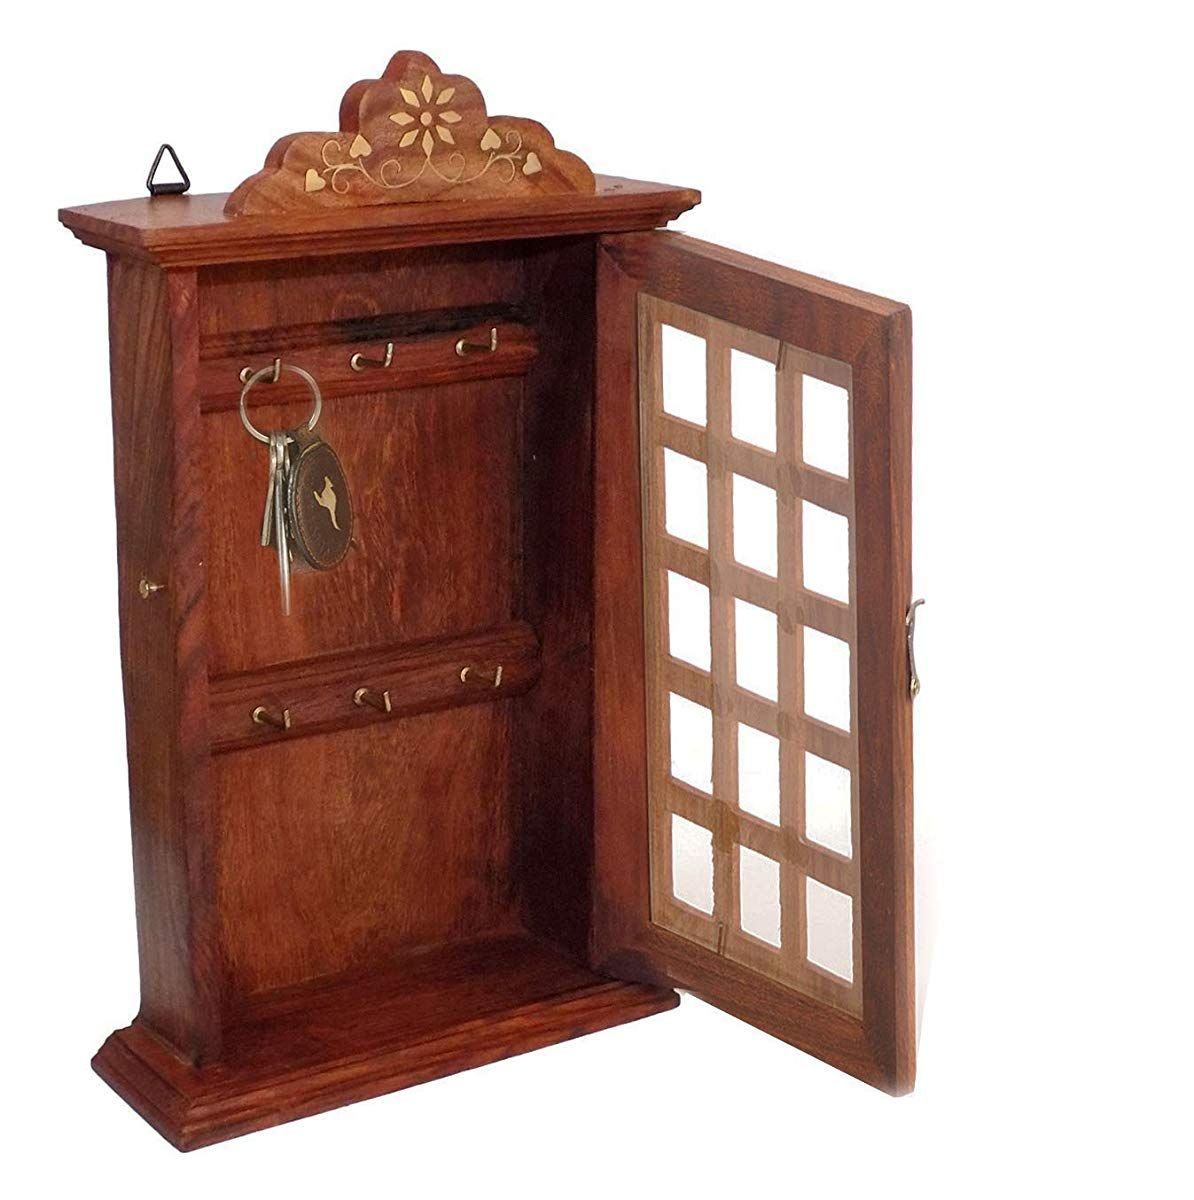 Indian Hand Crafted 13 Wooden Key Box Checks Inlay Work Key Holder Decorative Brown Color Key Cabinet Organizer 6 Hooks For Your Dream Home Easter Day Mot Wooden Key Holder